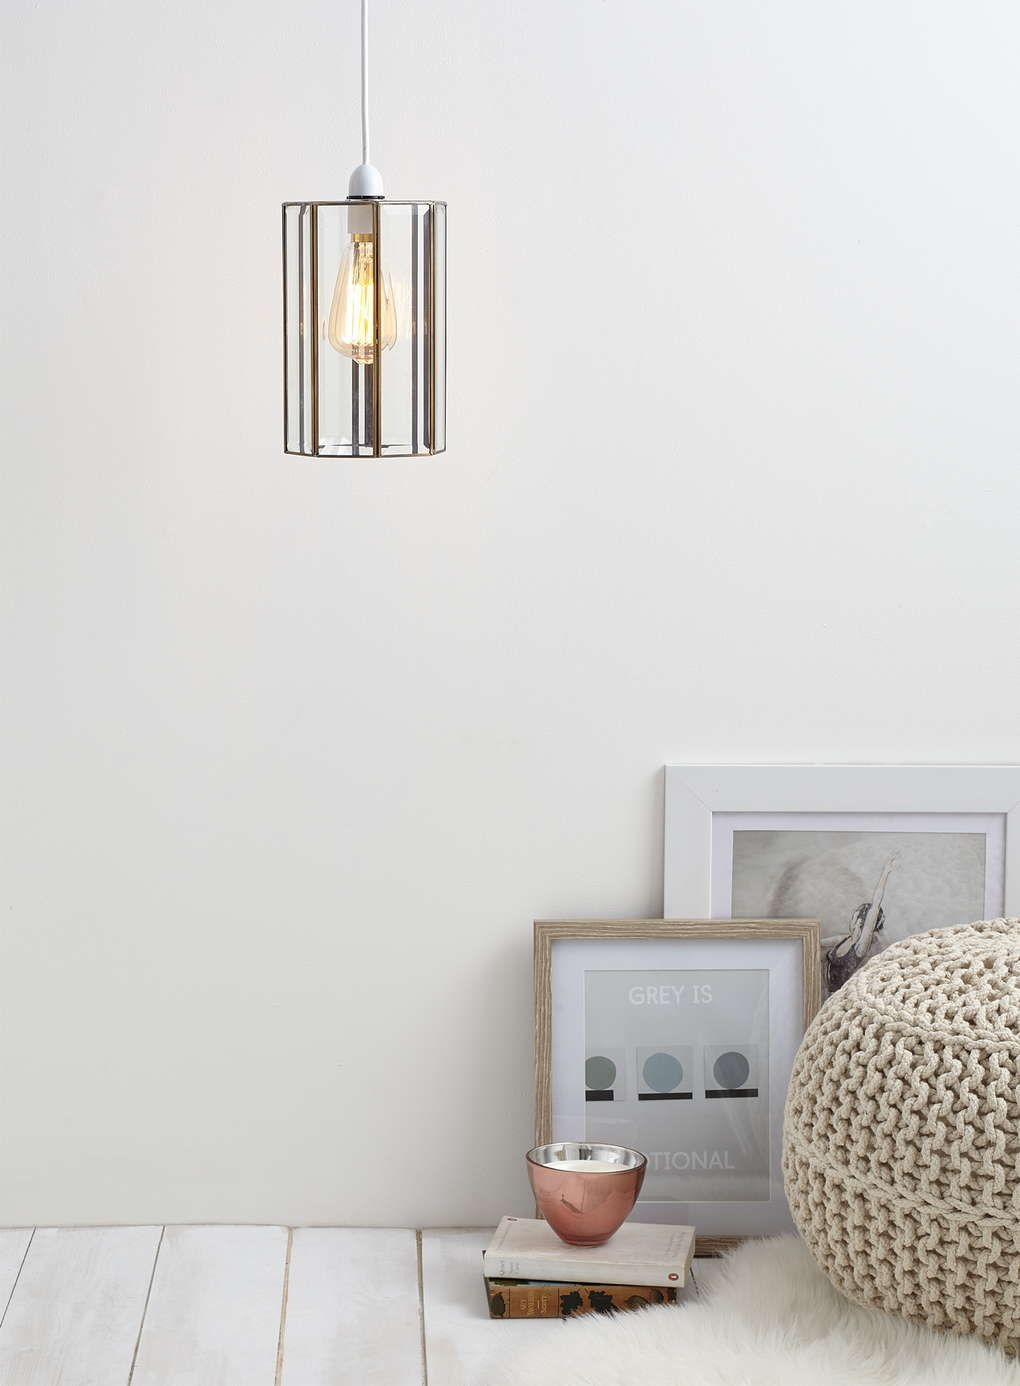 Upstairs bathroom light shade bhs home cloakroom pinterest upstairs bathroom light shade bhs aloadofball Image collections